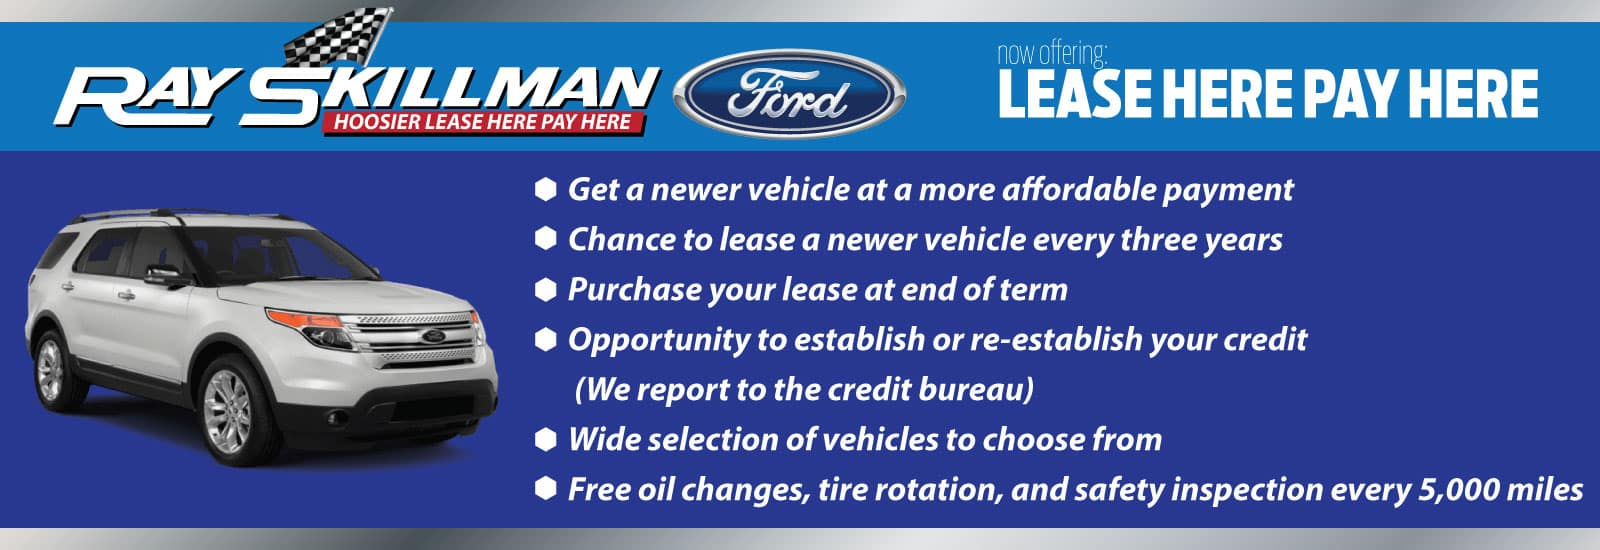 Ray-Skillman-Hoosier-Ford-Lease-Here-Pay-Here-Web-Banner-1600×550